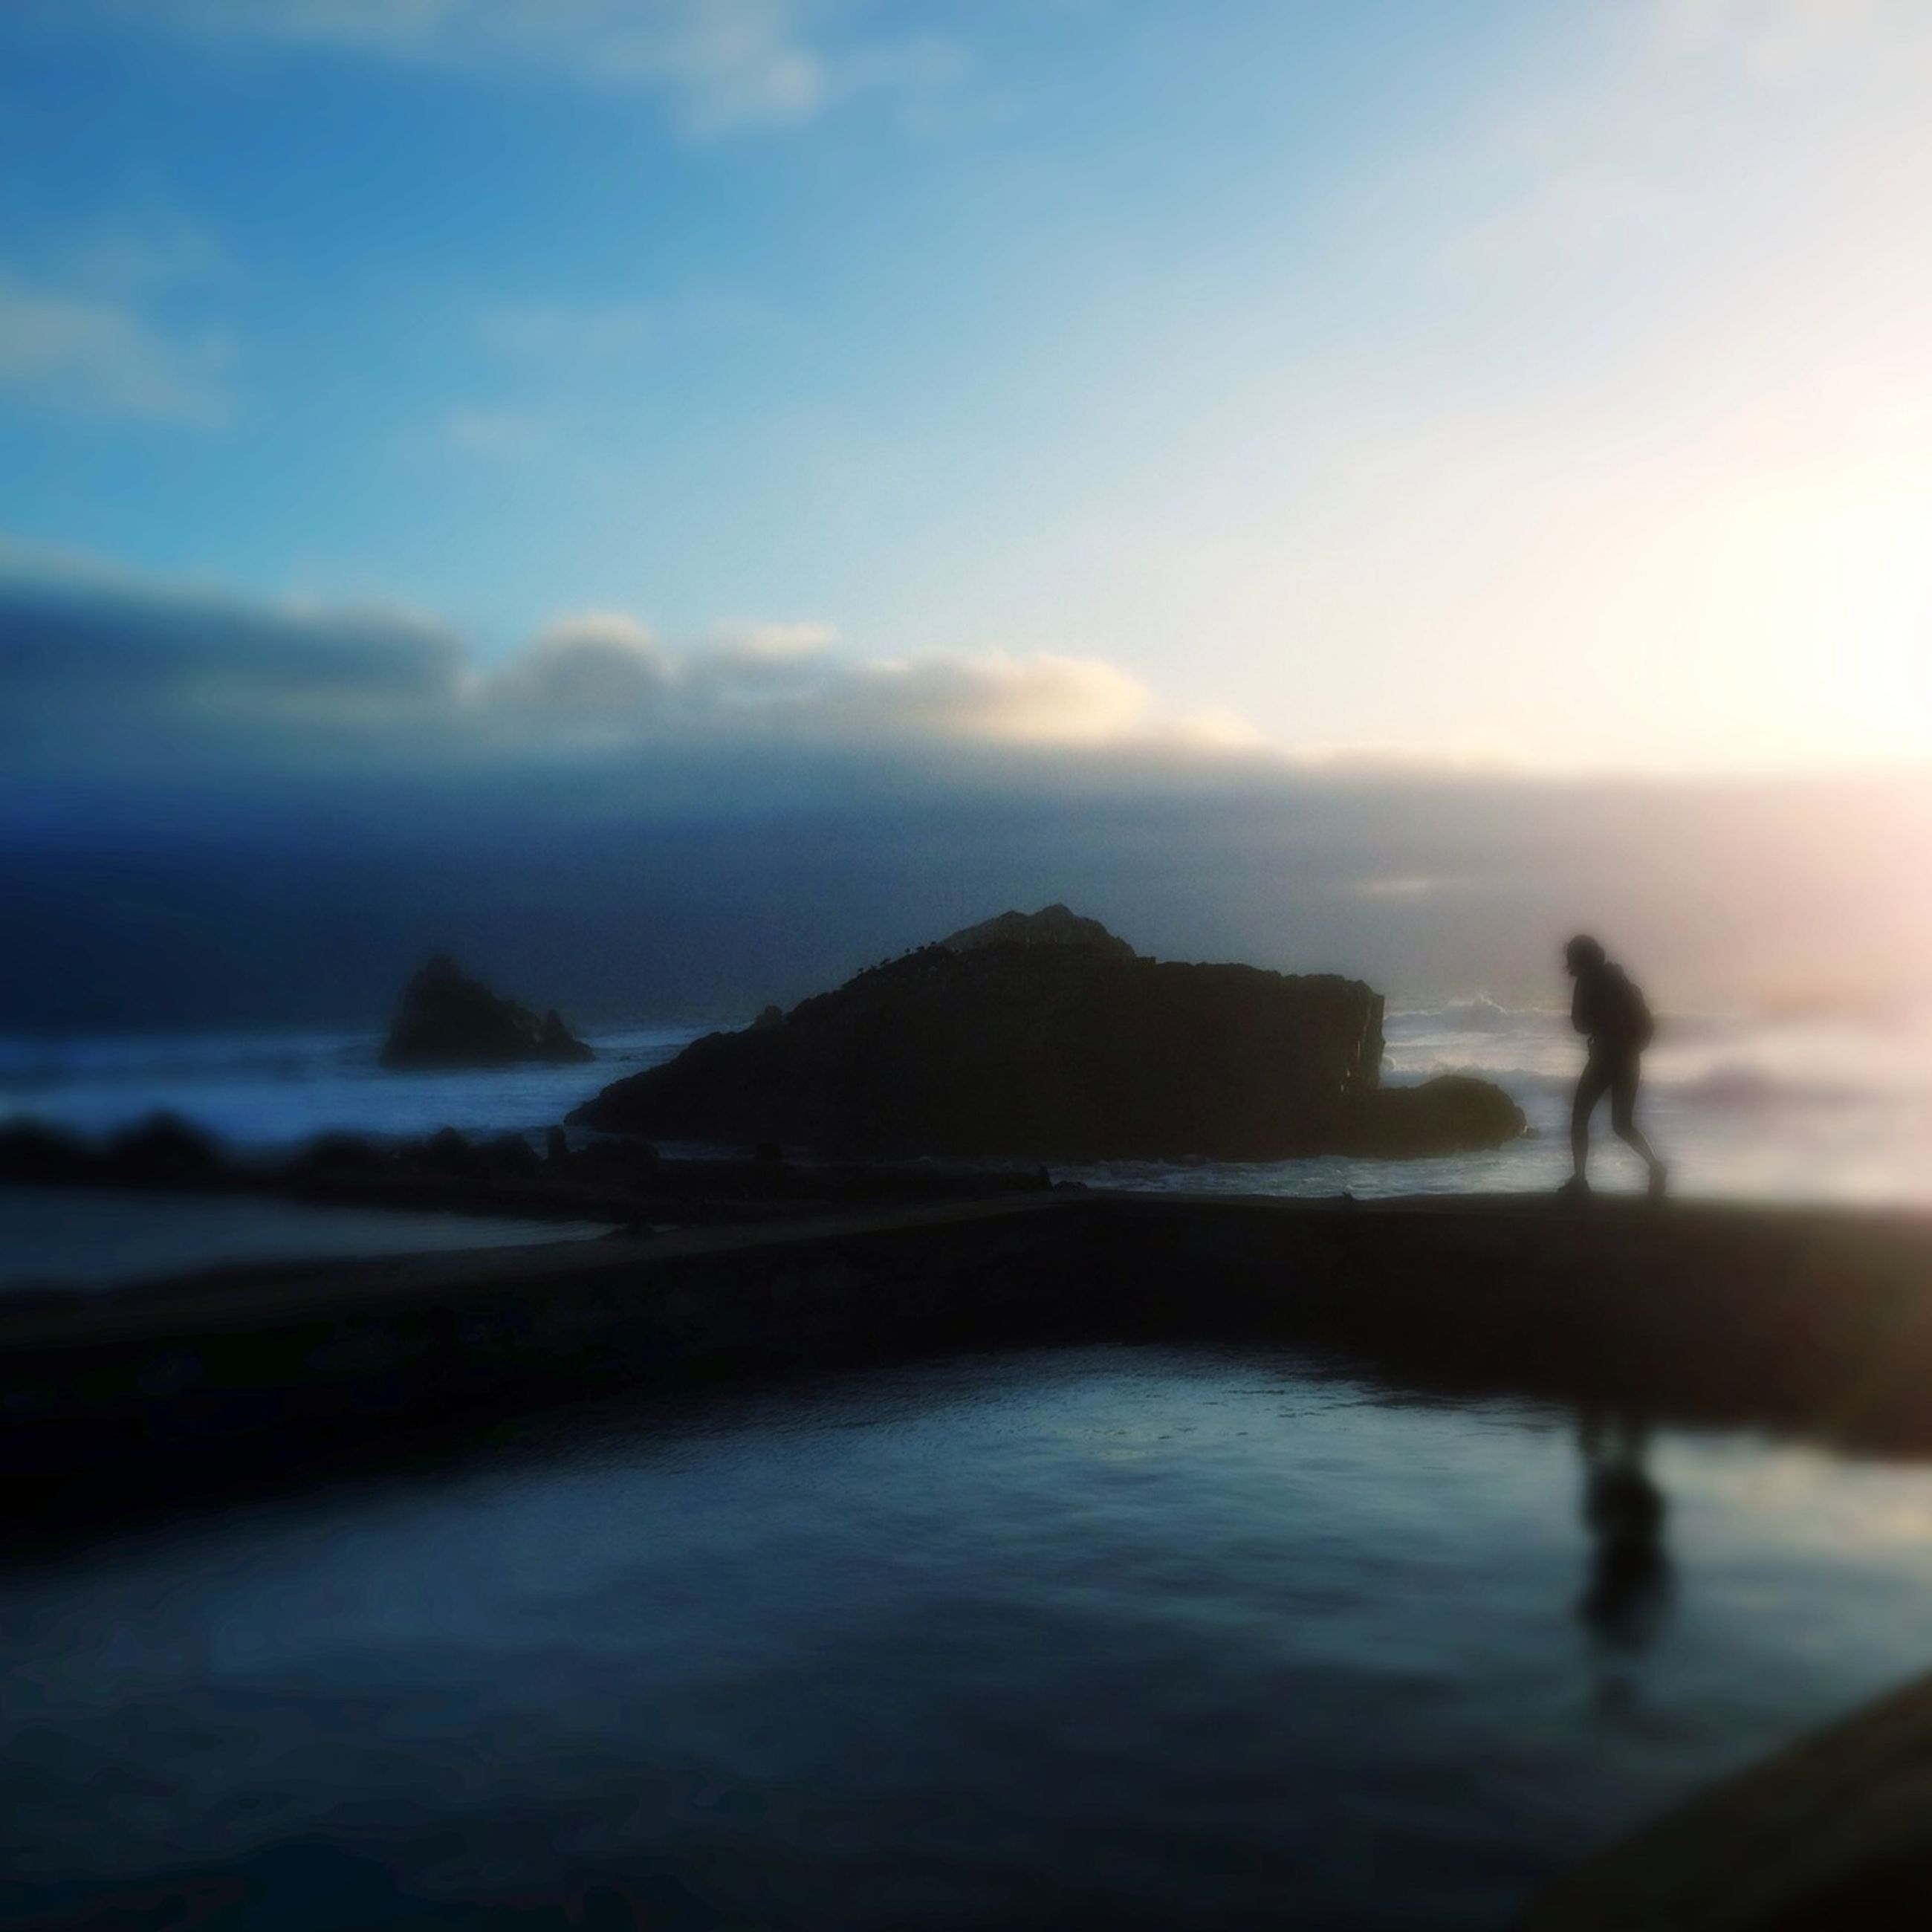 water, sea, silhouette, sky, tranquil scene, scenics, tranquility, beauty in nature, beach, lifestyles, leisure activity, nature, sunset, men, horizon over water, standing, cloud - sky, idyllic